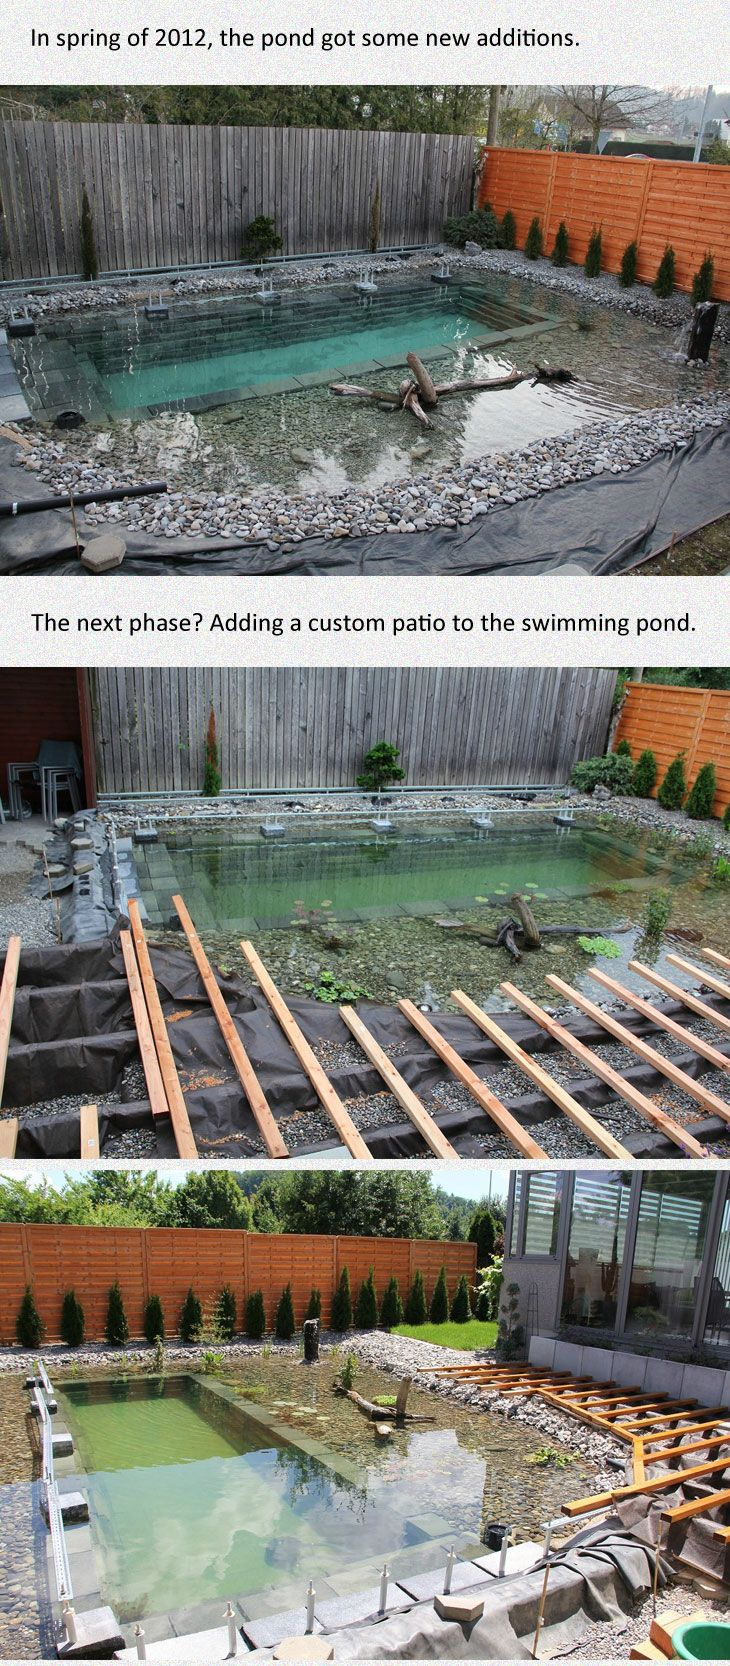 Backyard pond-style pool and deck, shown in stages